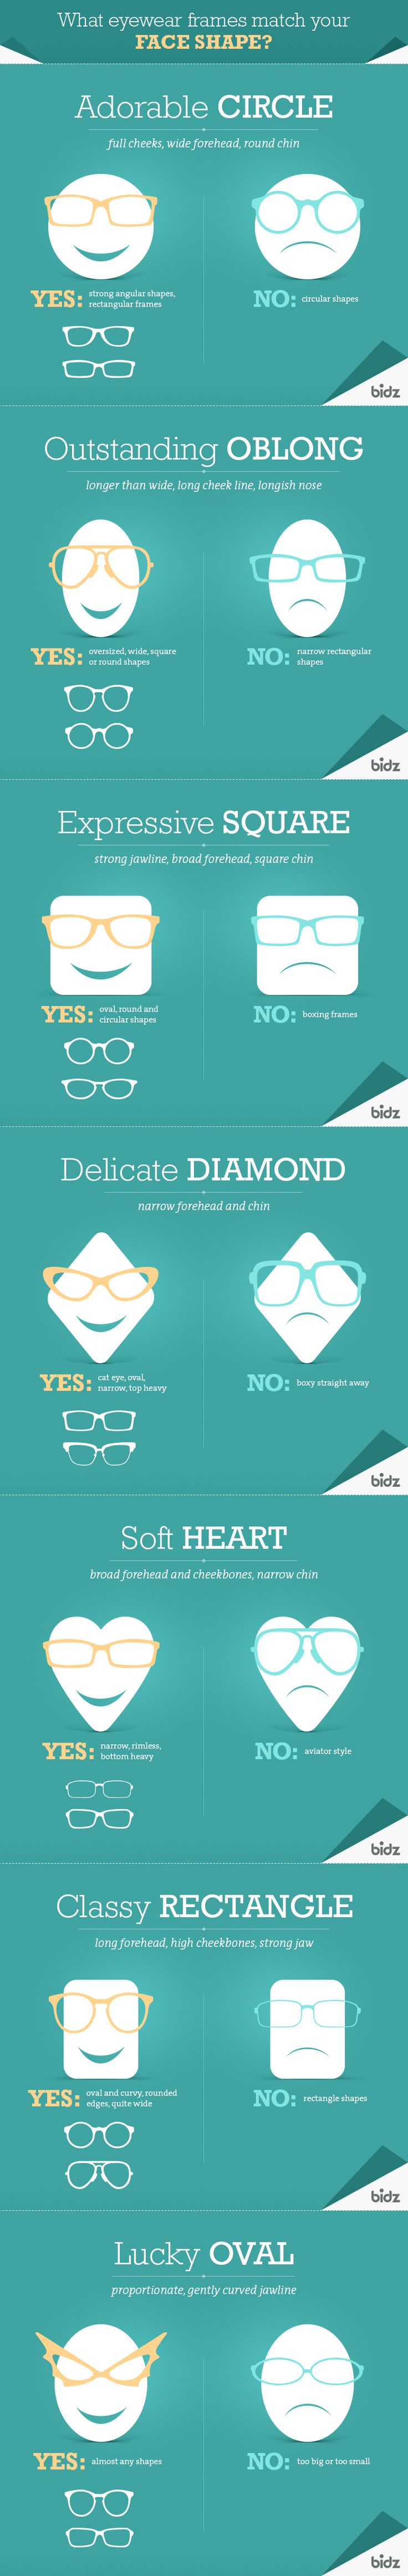 eyeglasses, what eyewear frames match your face shape, the best eyeglasses for your face shape